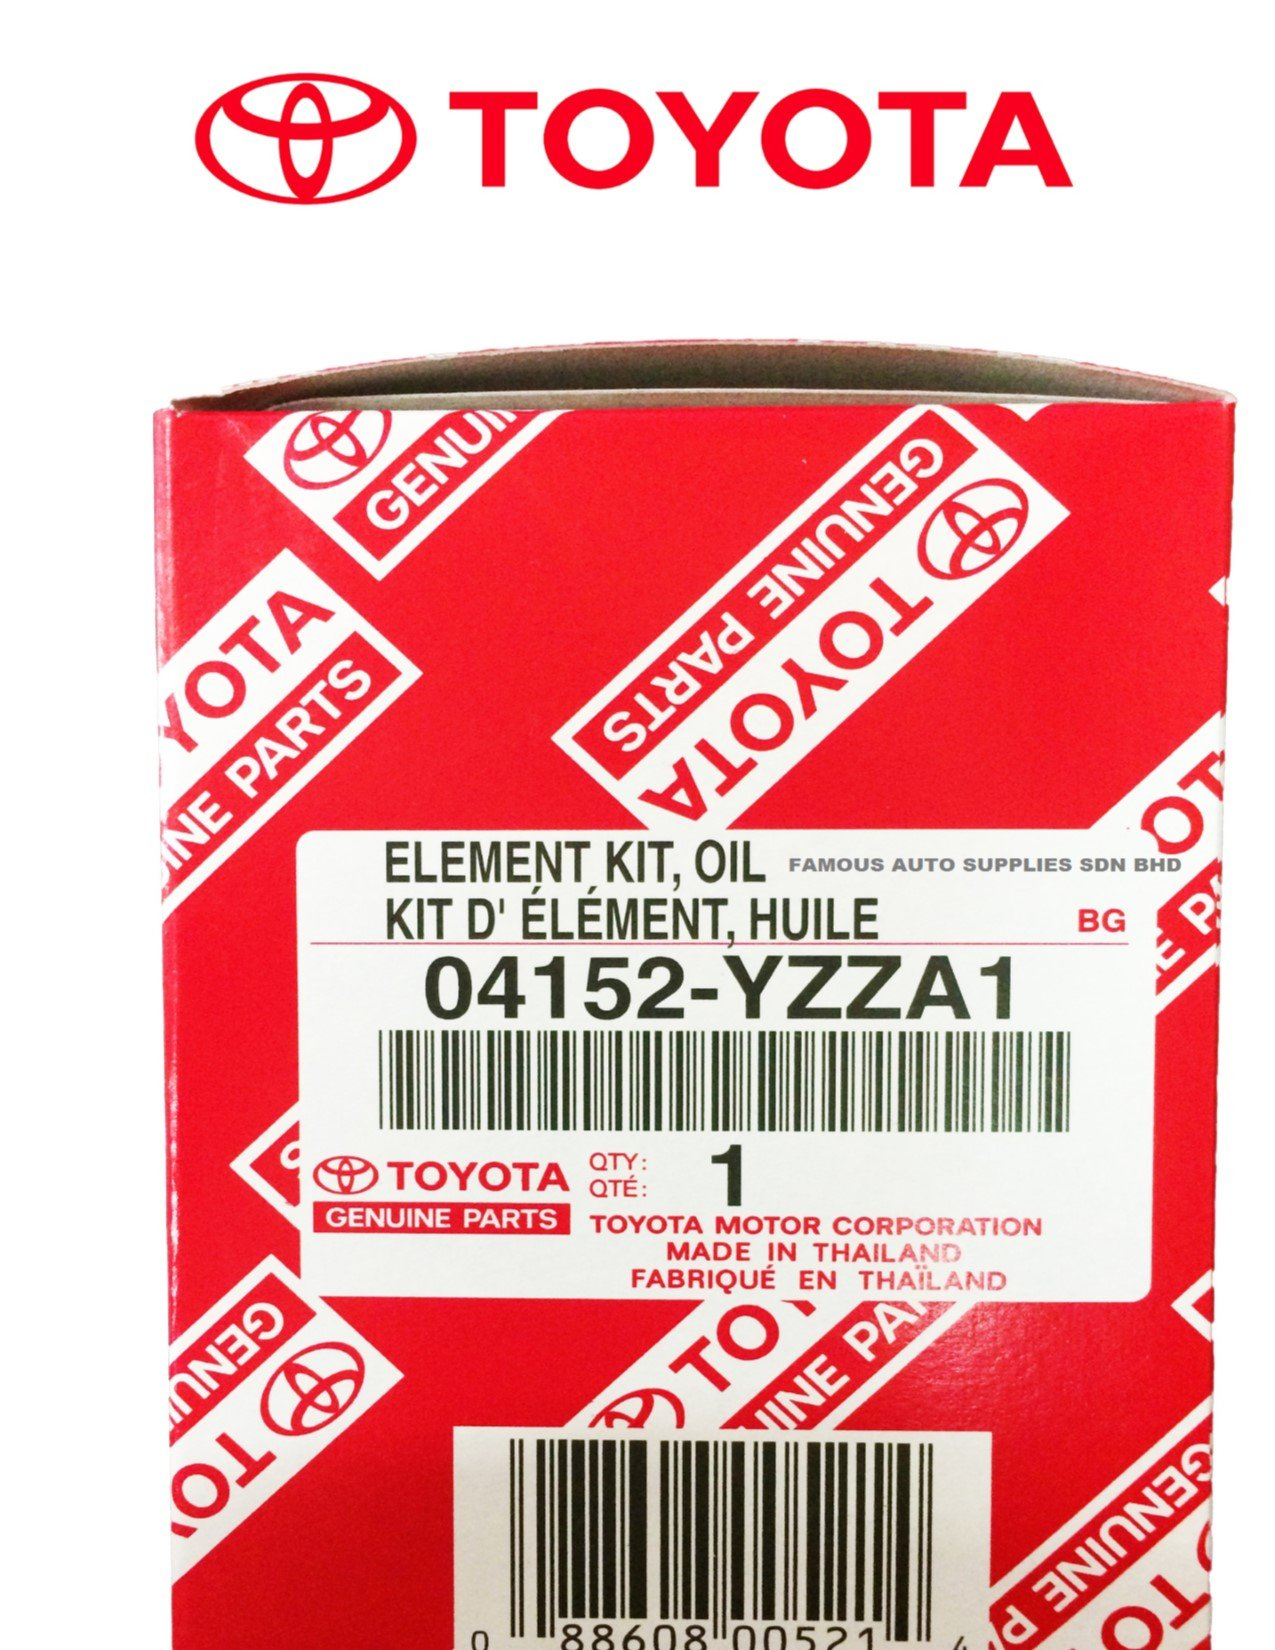 GENUINE TOYOTA OIL FILTER with WRENCH ASPG ZTOOL PREMIUM for 2.5L 3.5L to 5.7L Engines - Perfect for Camry, RAV4, Highlander, Sienna, Tundra and More - Fits 64mm Cartridge Style Oil Filter Housings by APSG (Image #2)